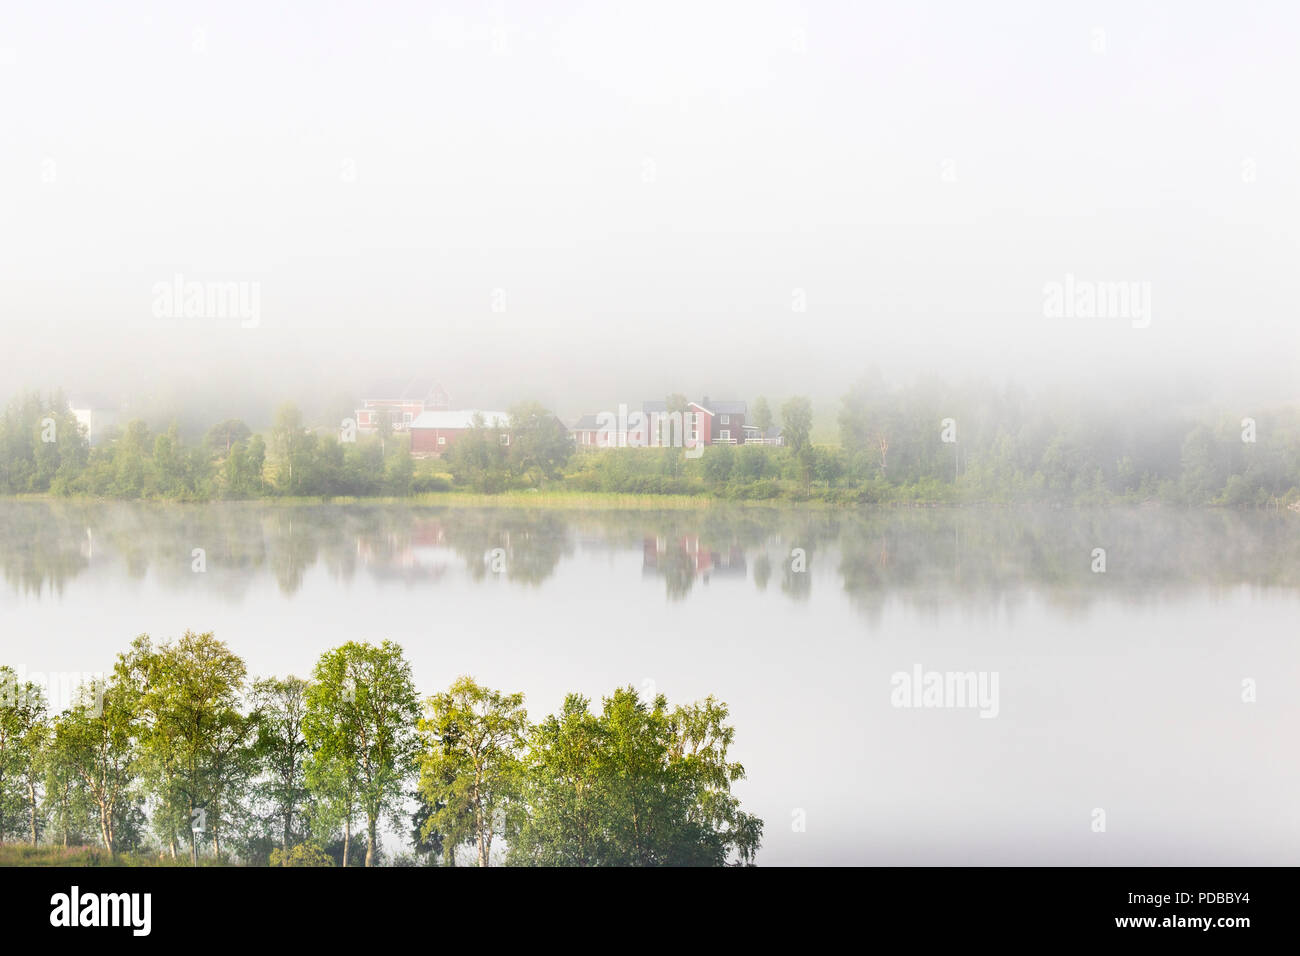 Farm by a river a foggy morning - Stock Image